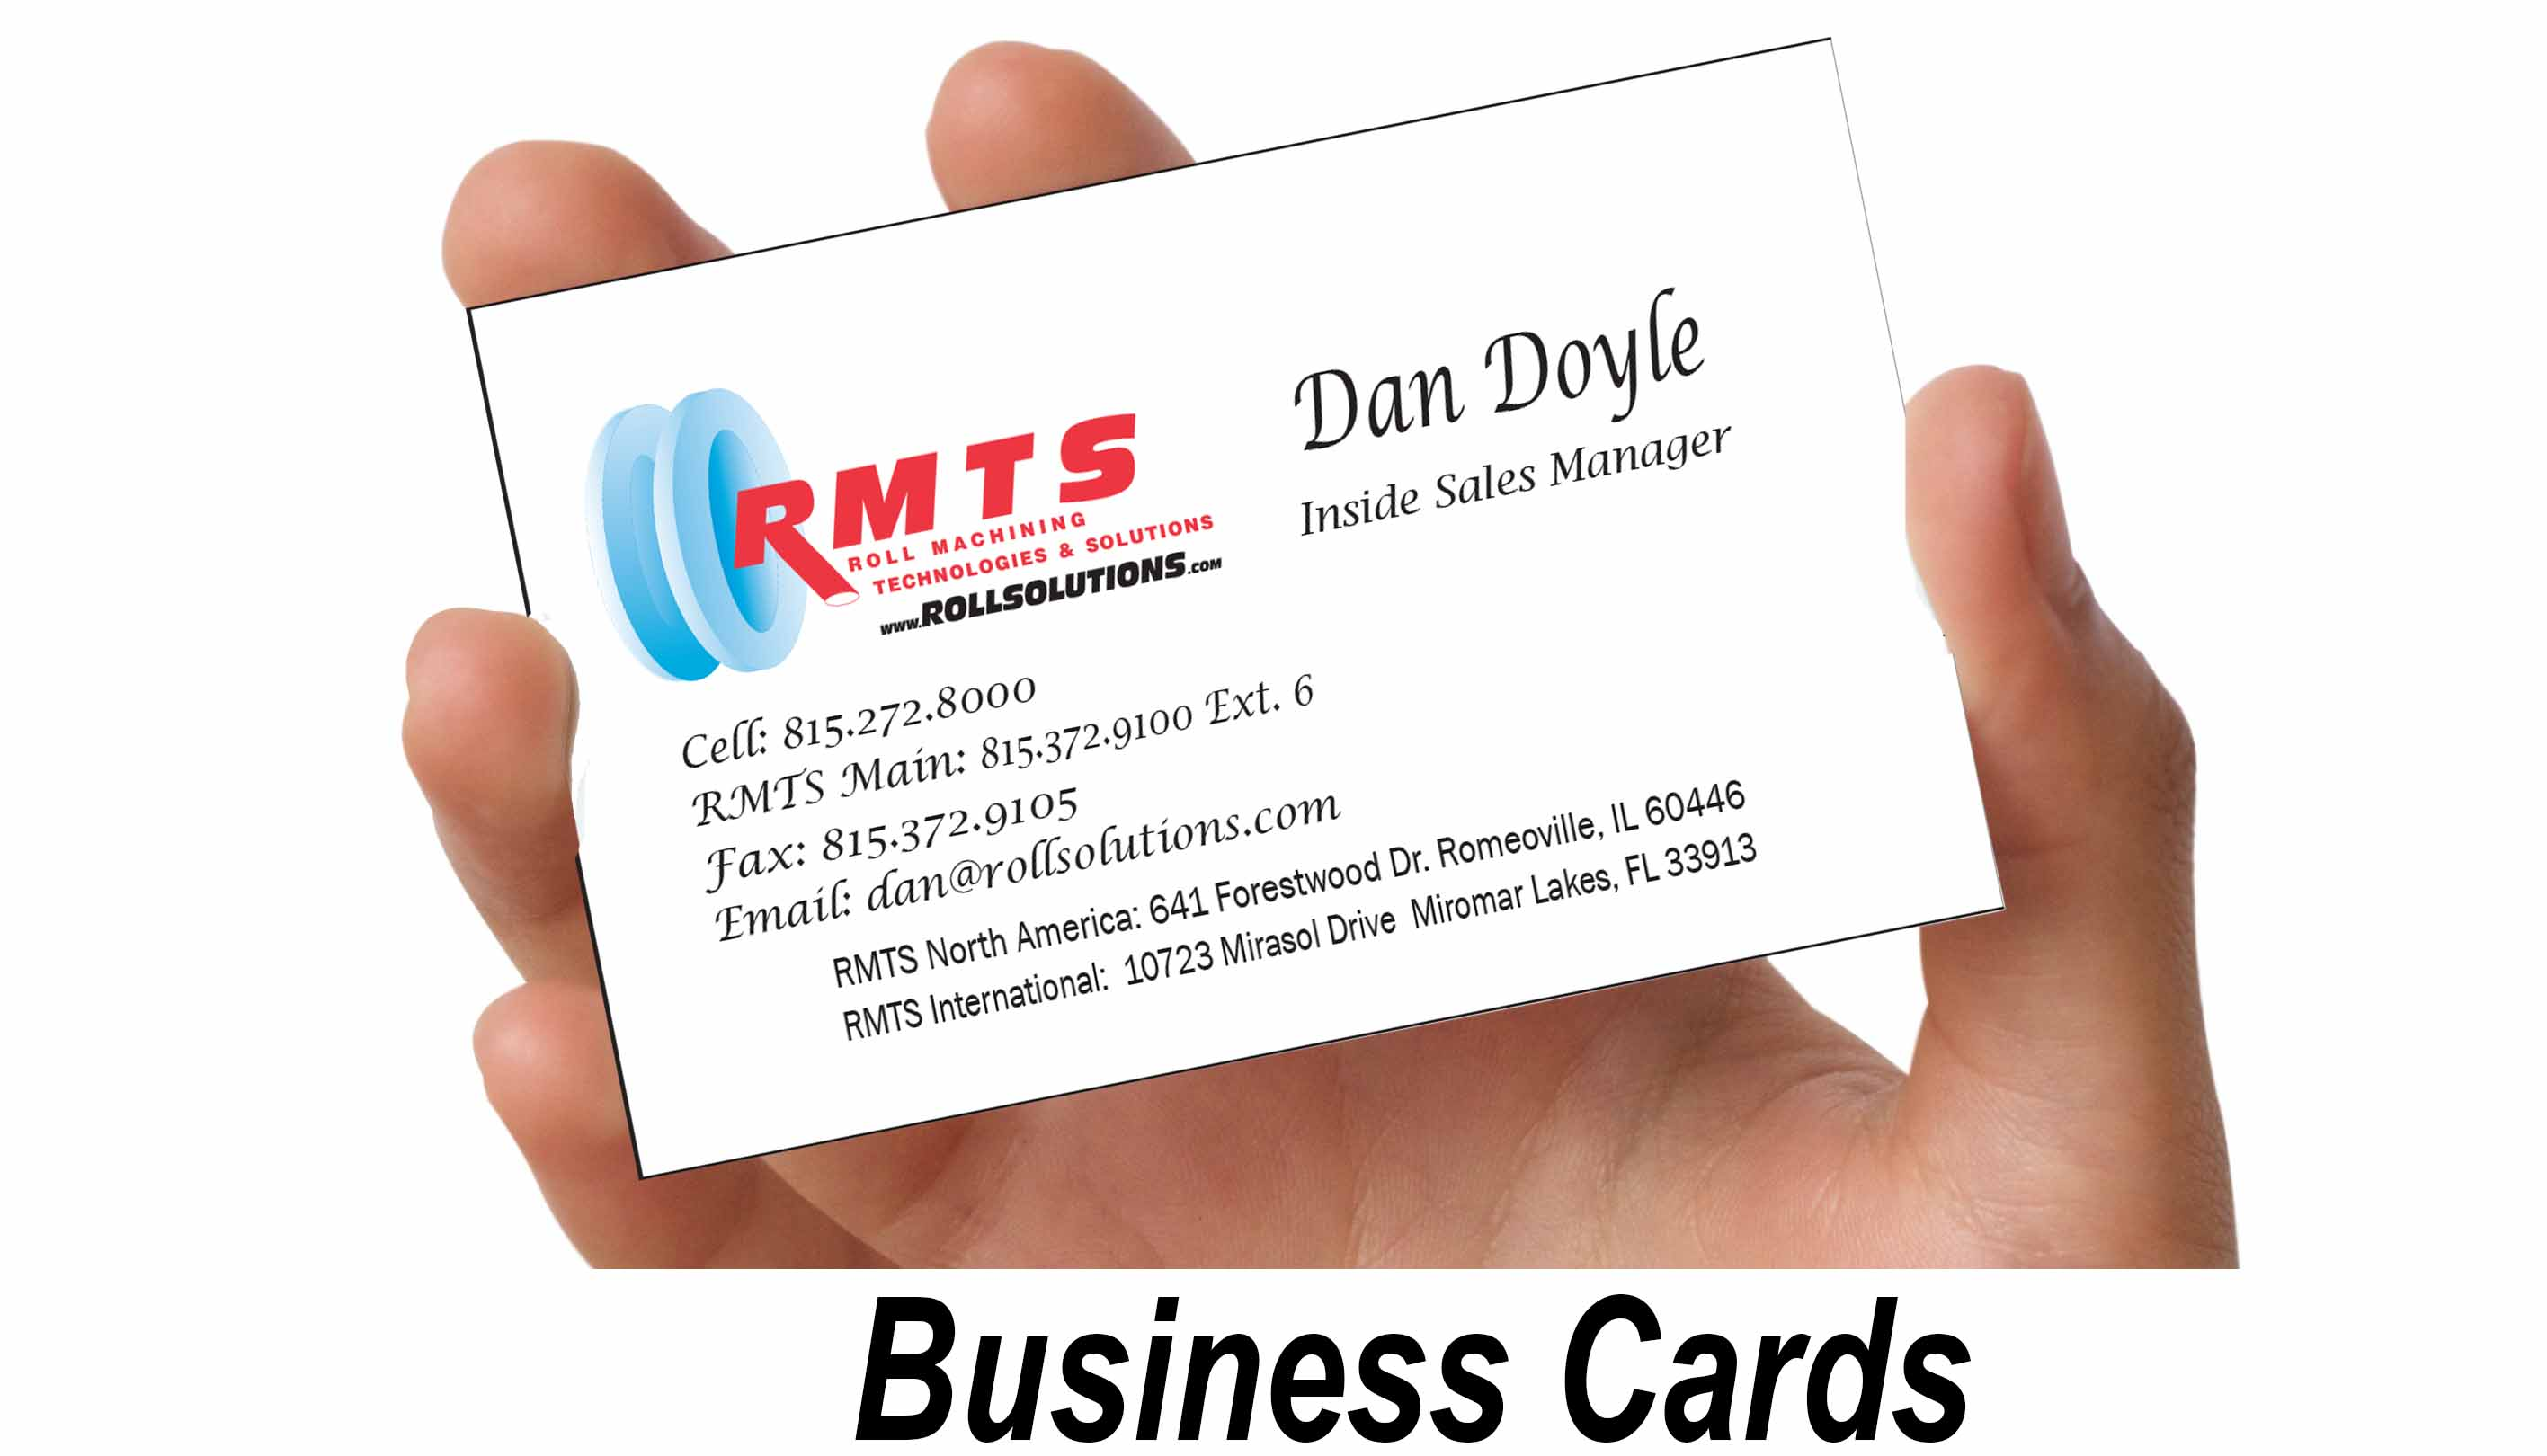 Roll Machining Technologies & Solutions – – Sales Rep Business Cards